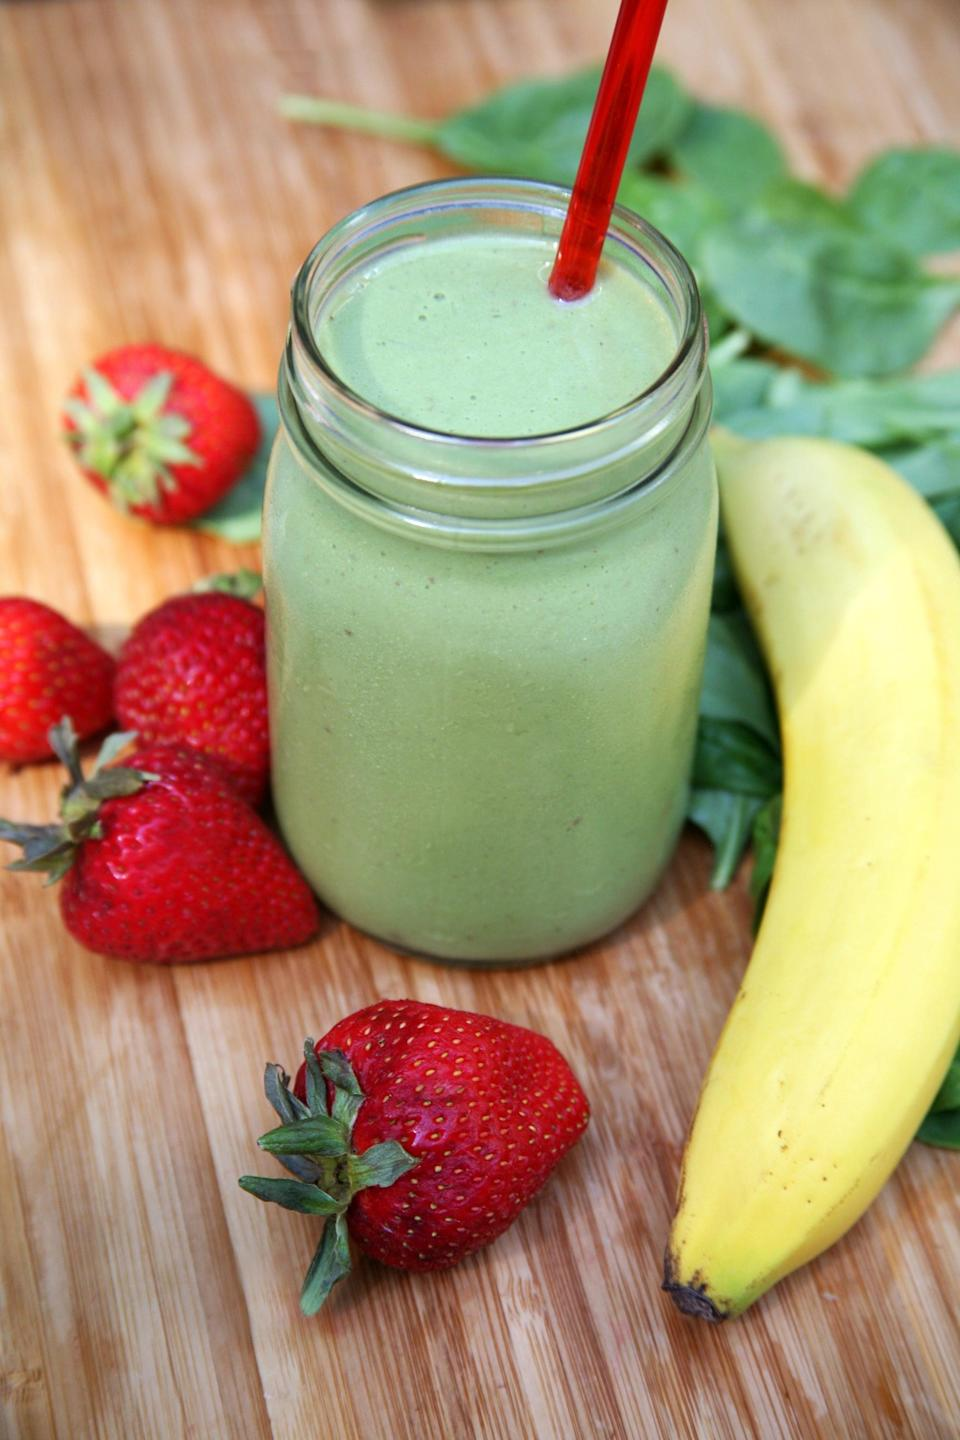 "<p>For the modest and shy Virgo, you'll love this reliably flavored smoothie that may be made with super basic ingredients but is always satisfying.</p> <p><strong>Get the recipe</strong>: <a href=""https://www.popsugar.com/fitness/photo-gallery/35401577/image/35514753/Smoothie-Recipe-2-Vegan"" class=""link rapid-noclick-resp"" rel=""nofollow noopener"" target=""_blank"" data-ylk=""slk:strawberry banana smoothie"">strawberry banana smoothie</a></p>"